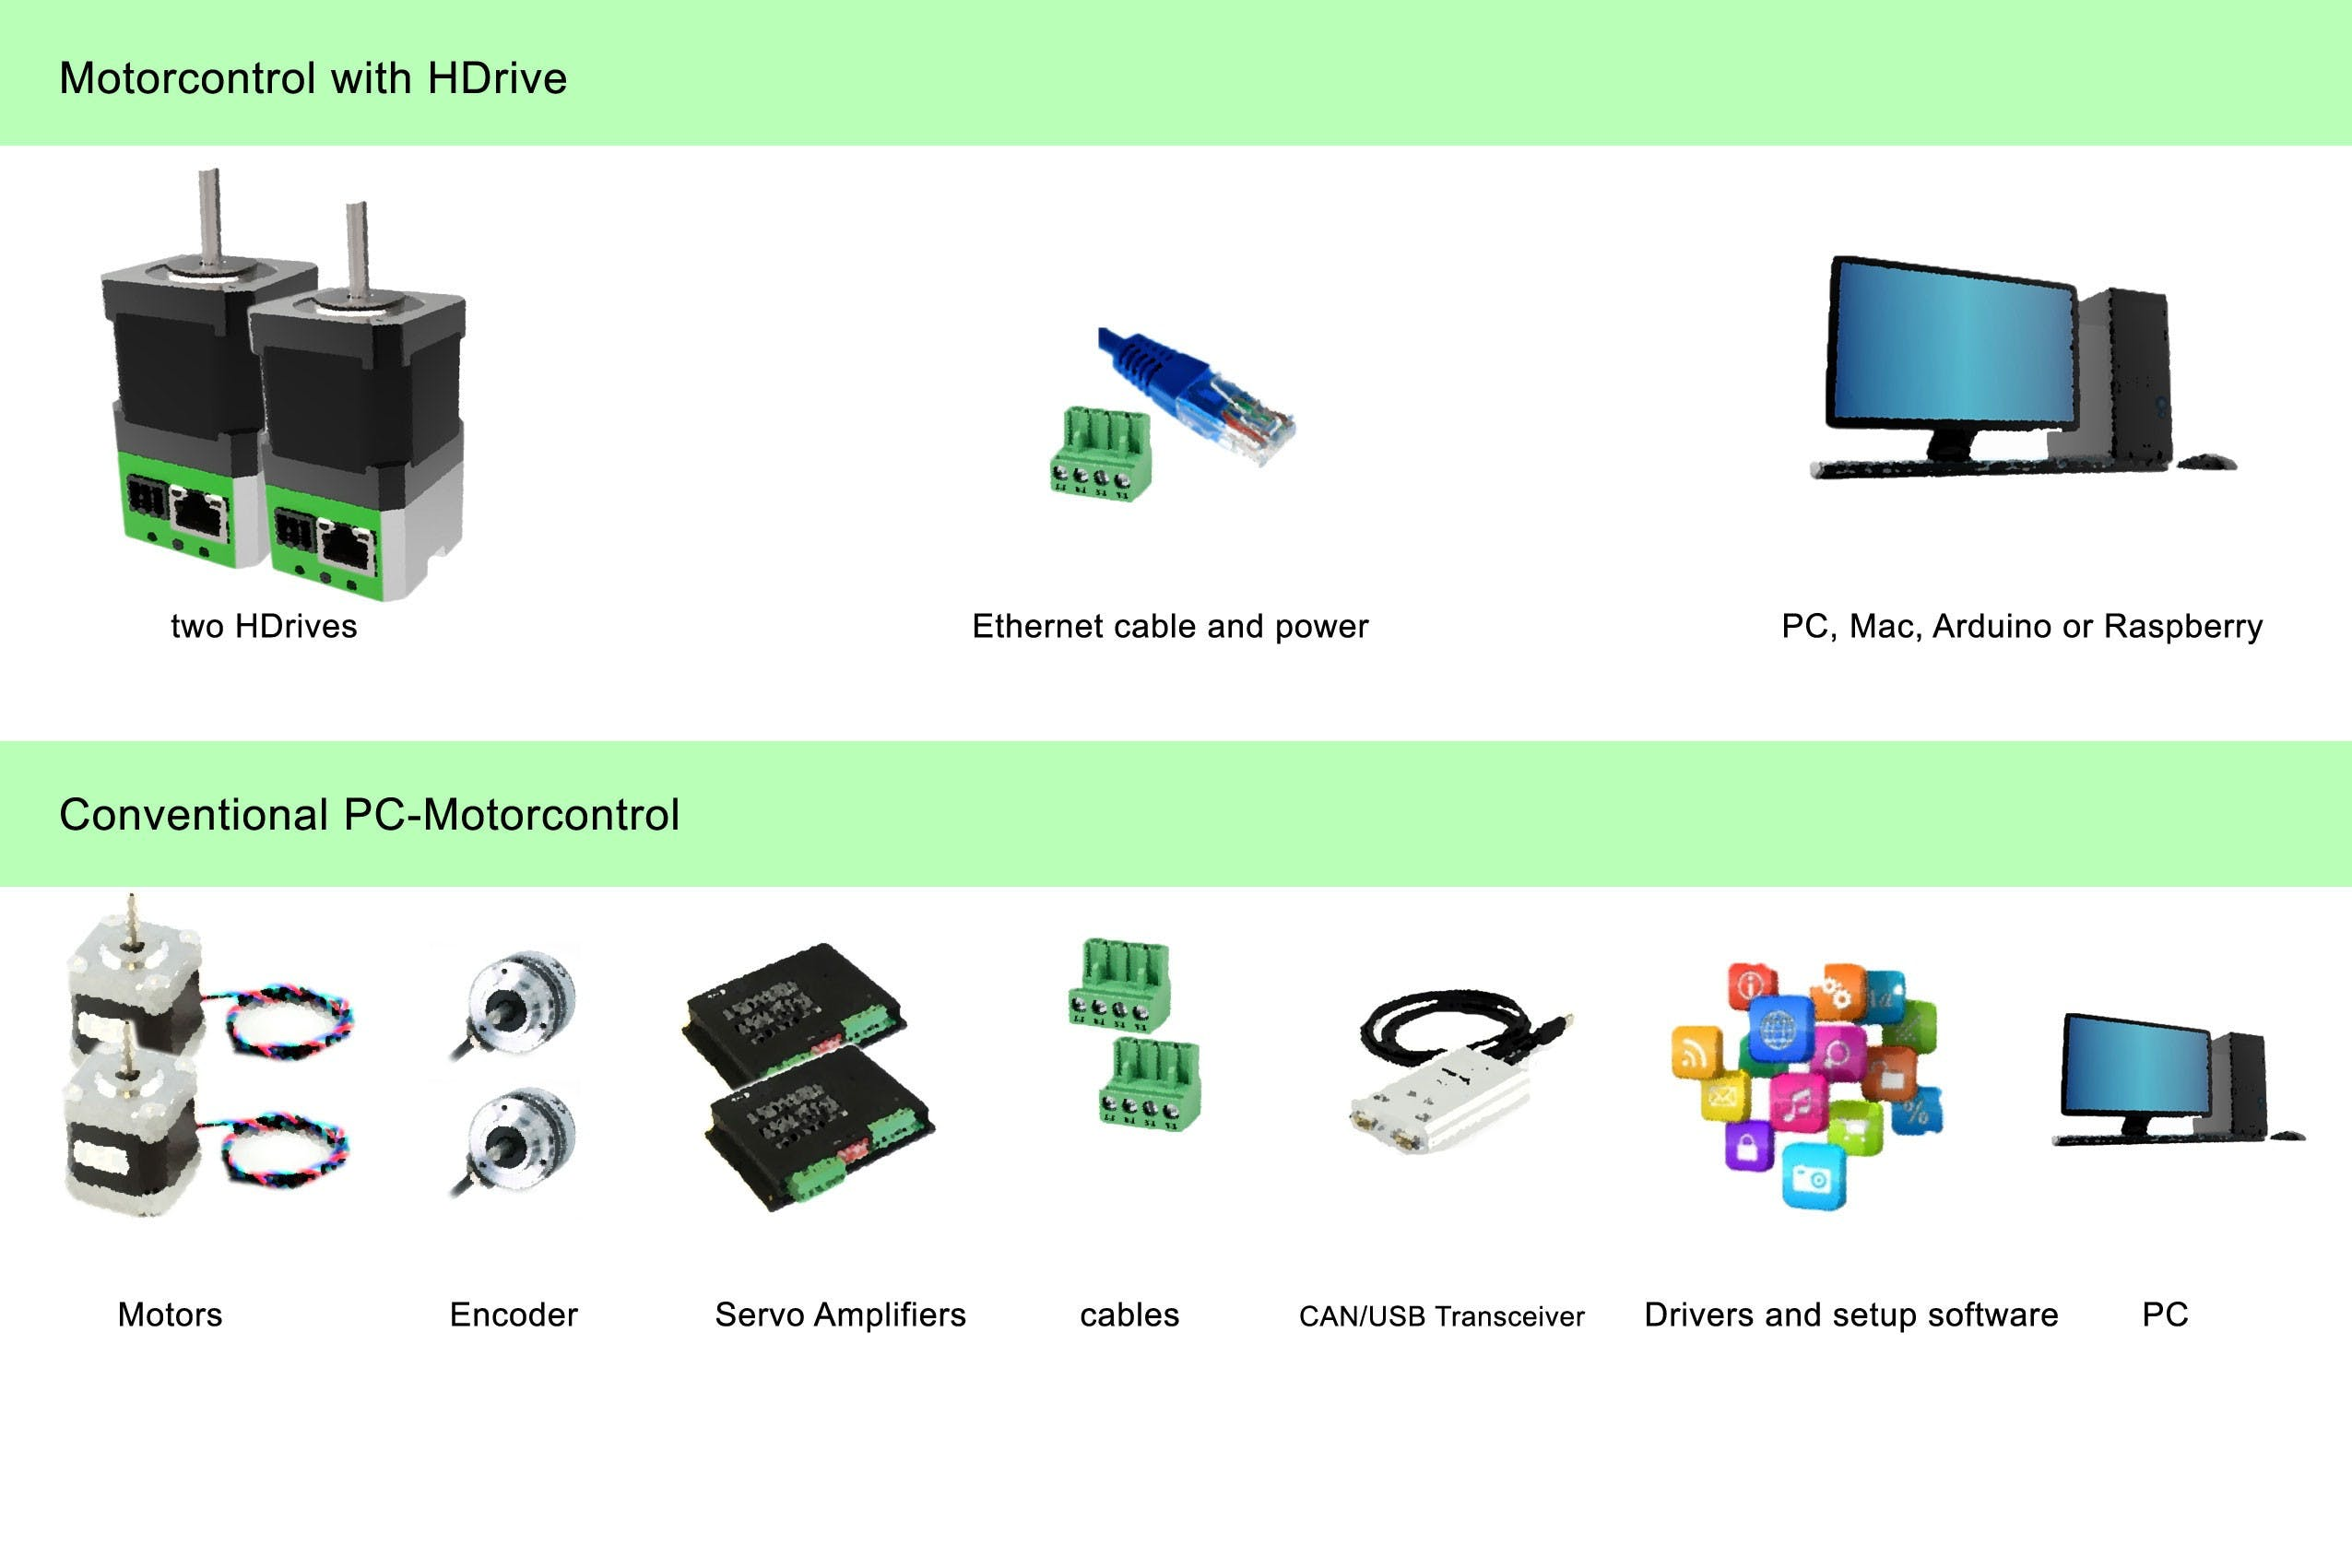 see our comparison between state of the art motor control